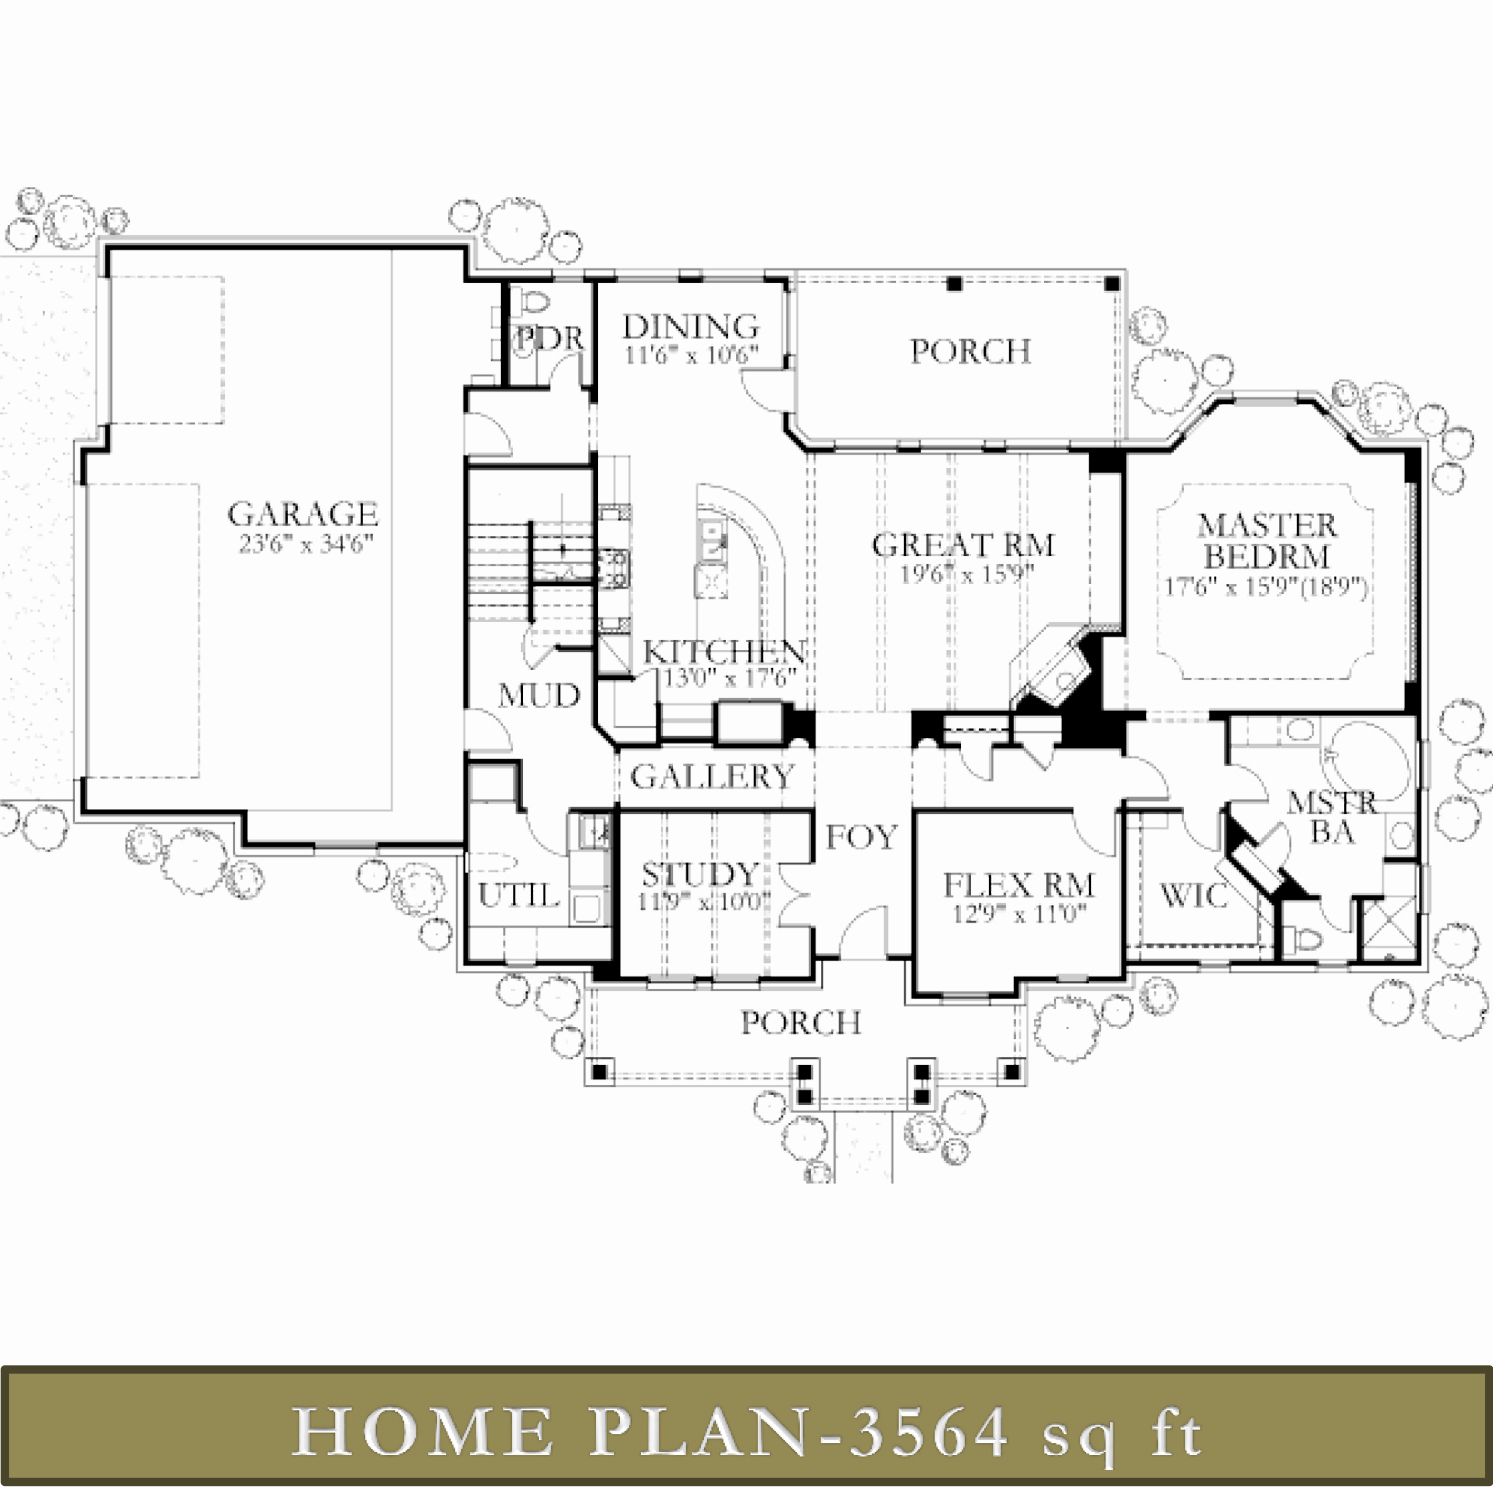 House Plans 3500 To 4000 Sq Ft Numberedtype